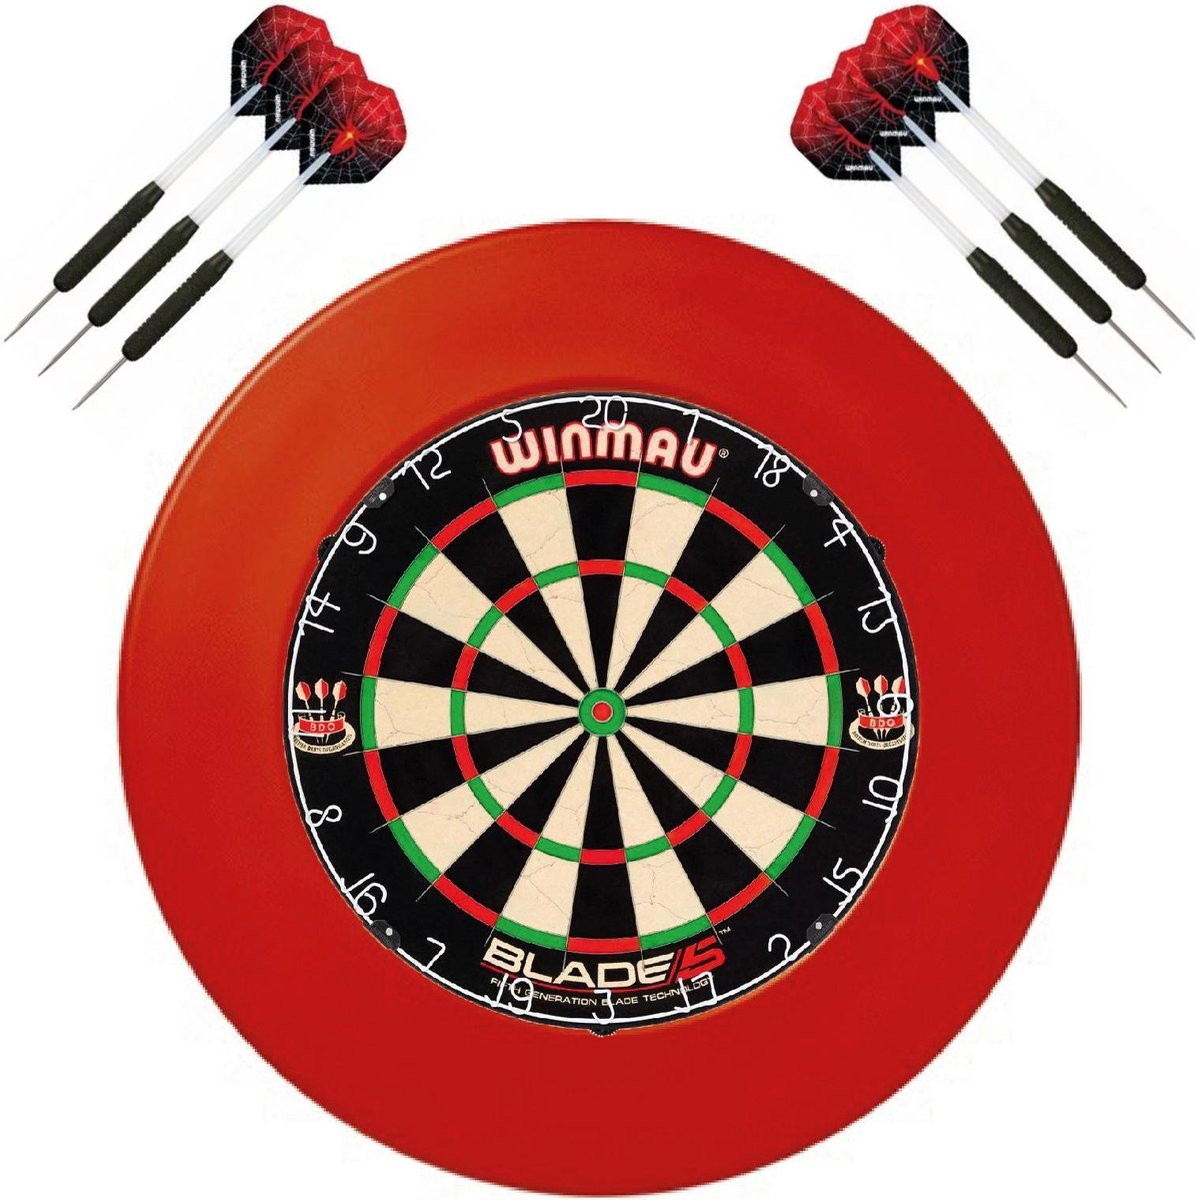 Winmau set - Winmau Blade 5 - dartbord - plus surround ring rood - plus 2 sets - dartpijlen